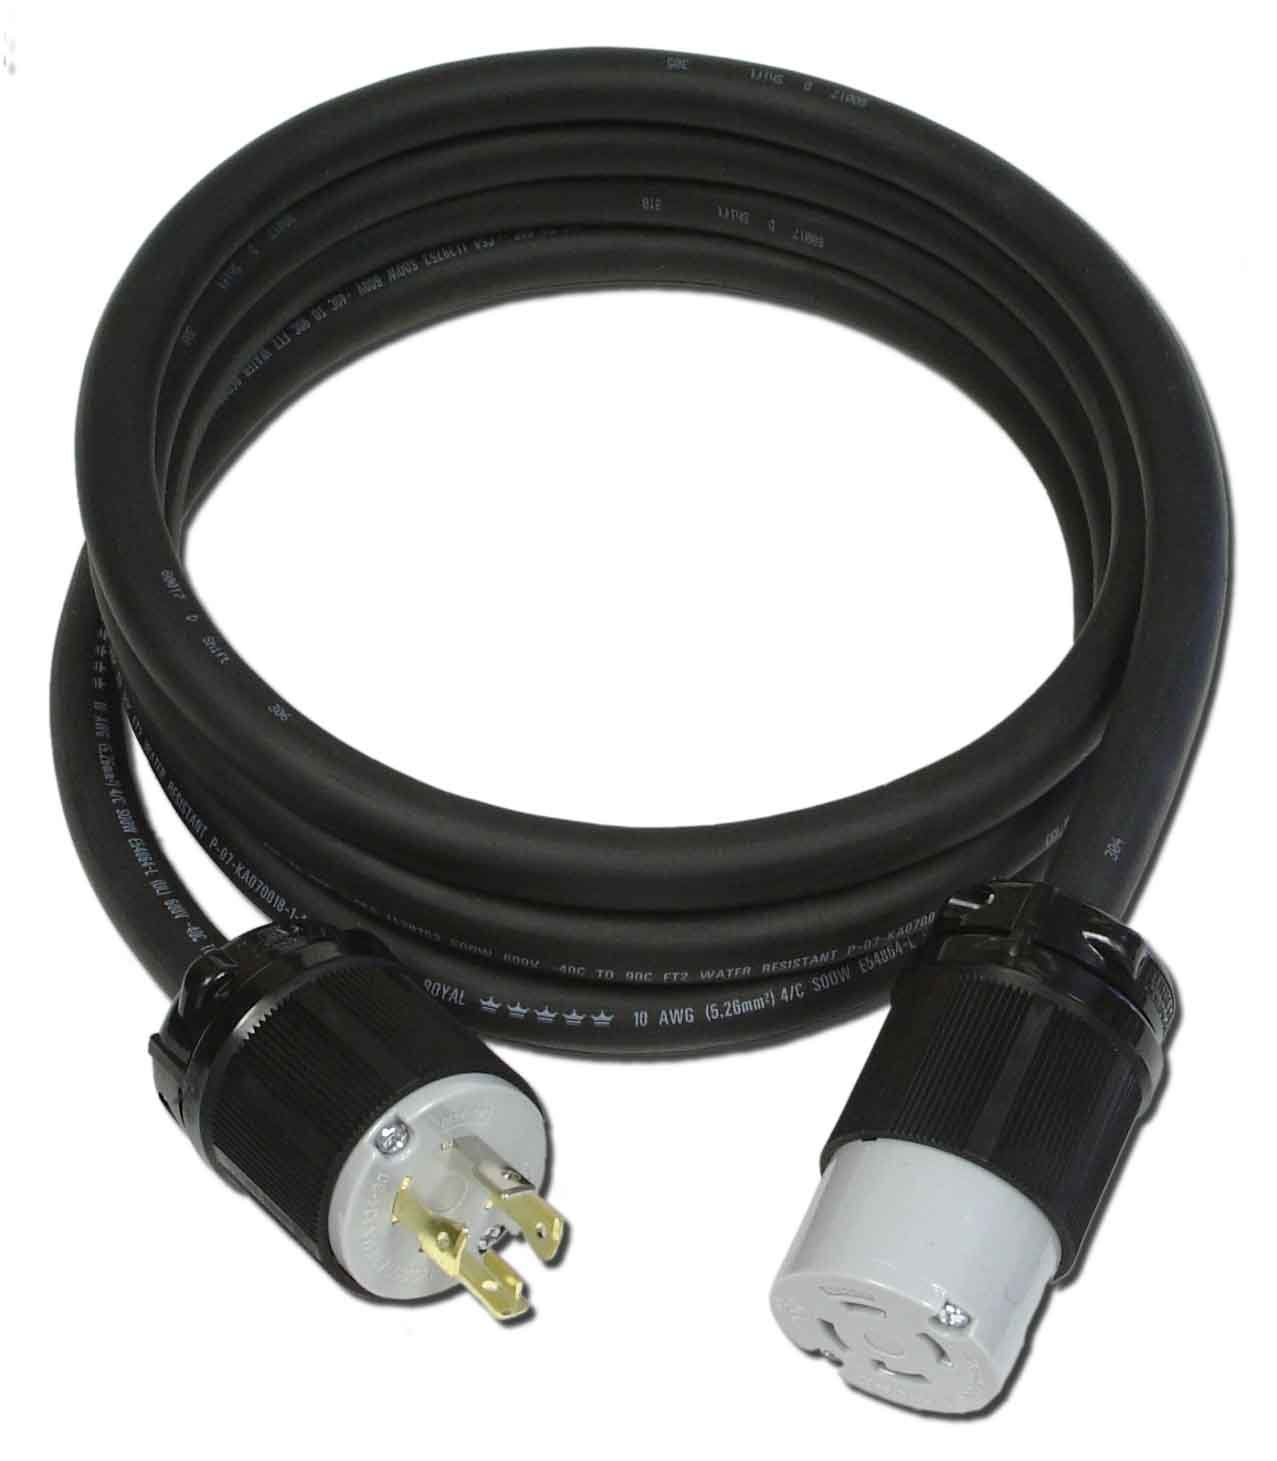 Powertronics Connections NEMA L14-30 15' cord 15-Feet 30-Amp L14-30 Generator Power Cord for Up to 7,500-watt Generators